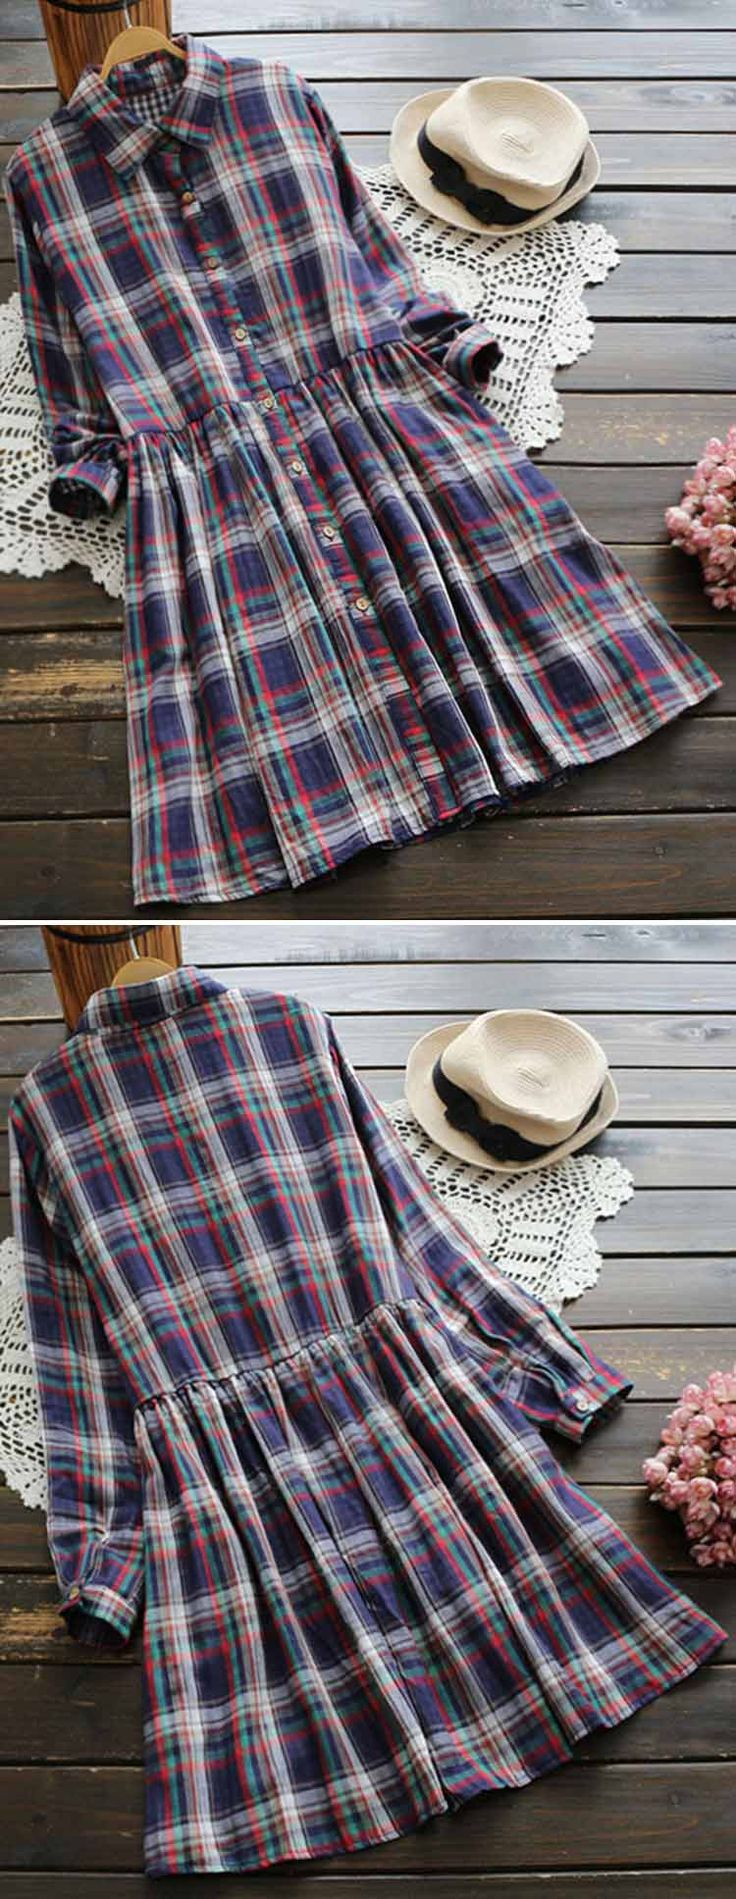 Feel this new dress with free shipping! It is so cute and gonna make you cozy all day long! Collect it at Cupshe.com